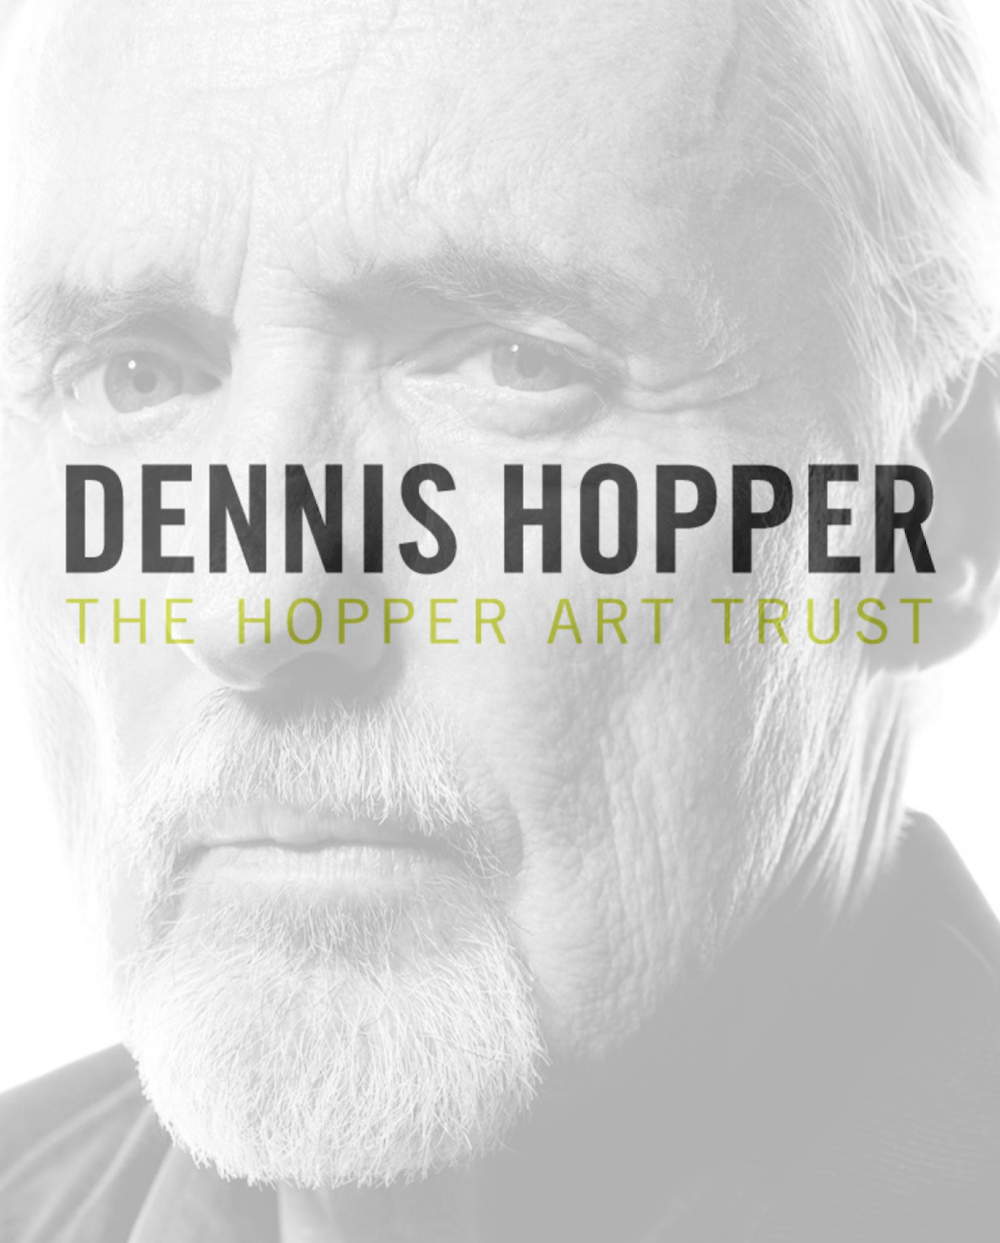 THE HOPPER ART TRUST